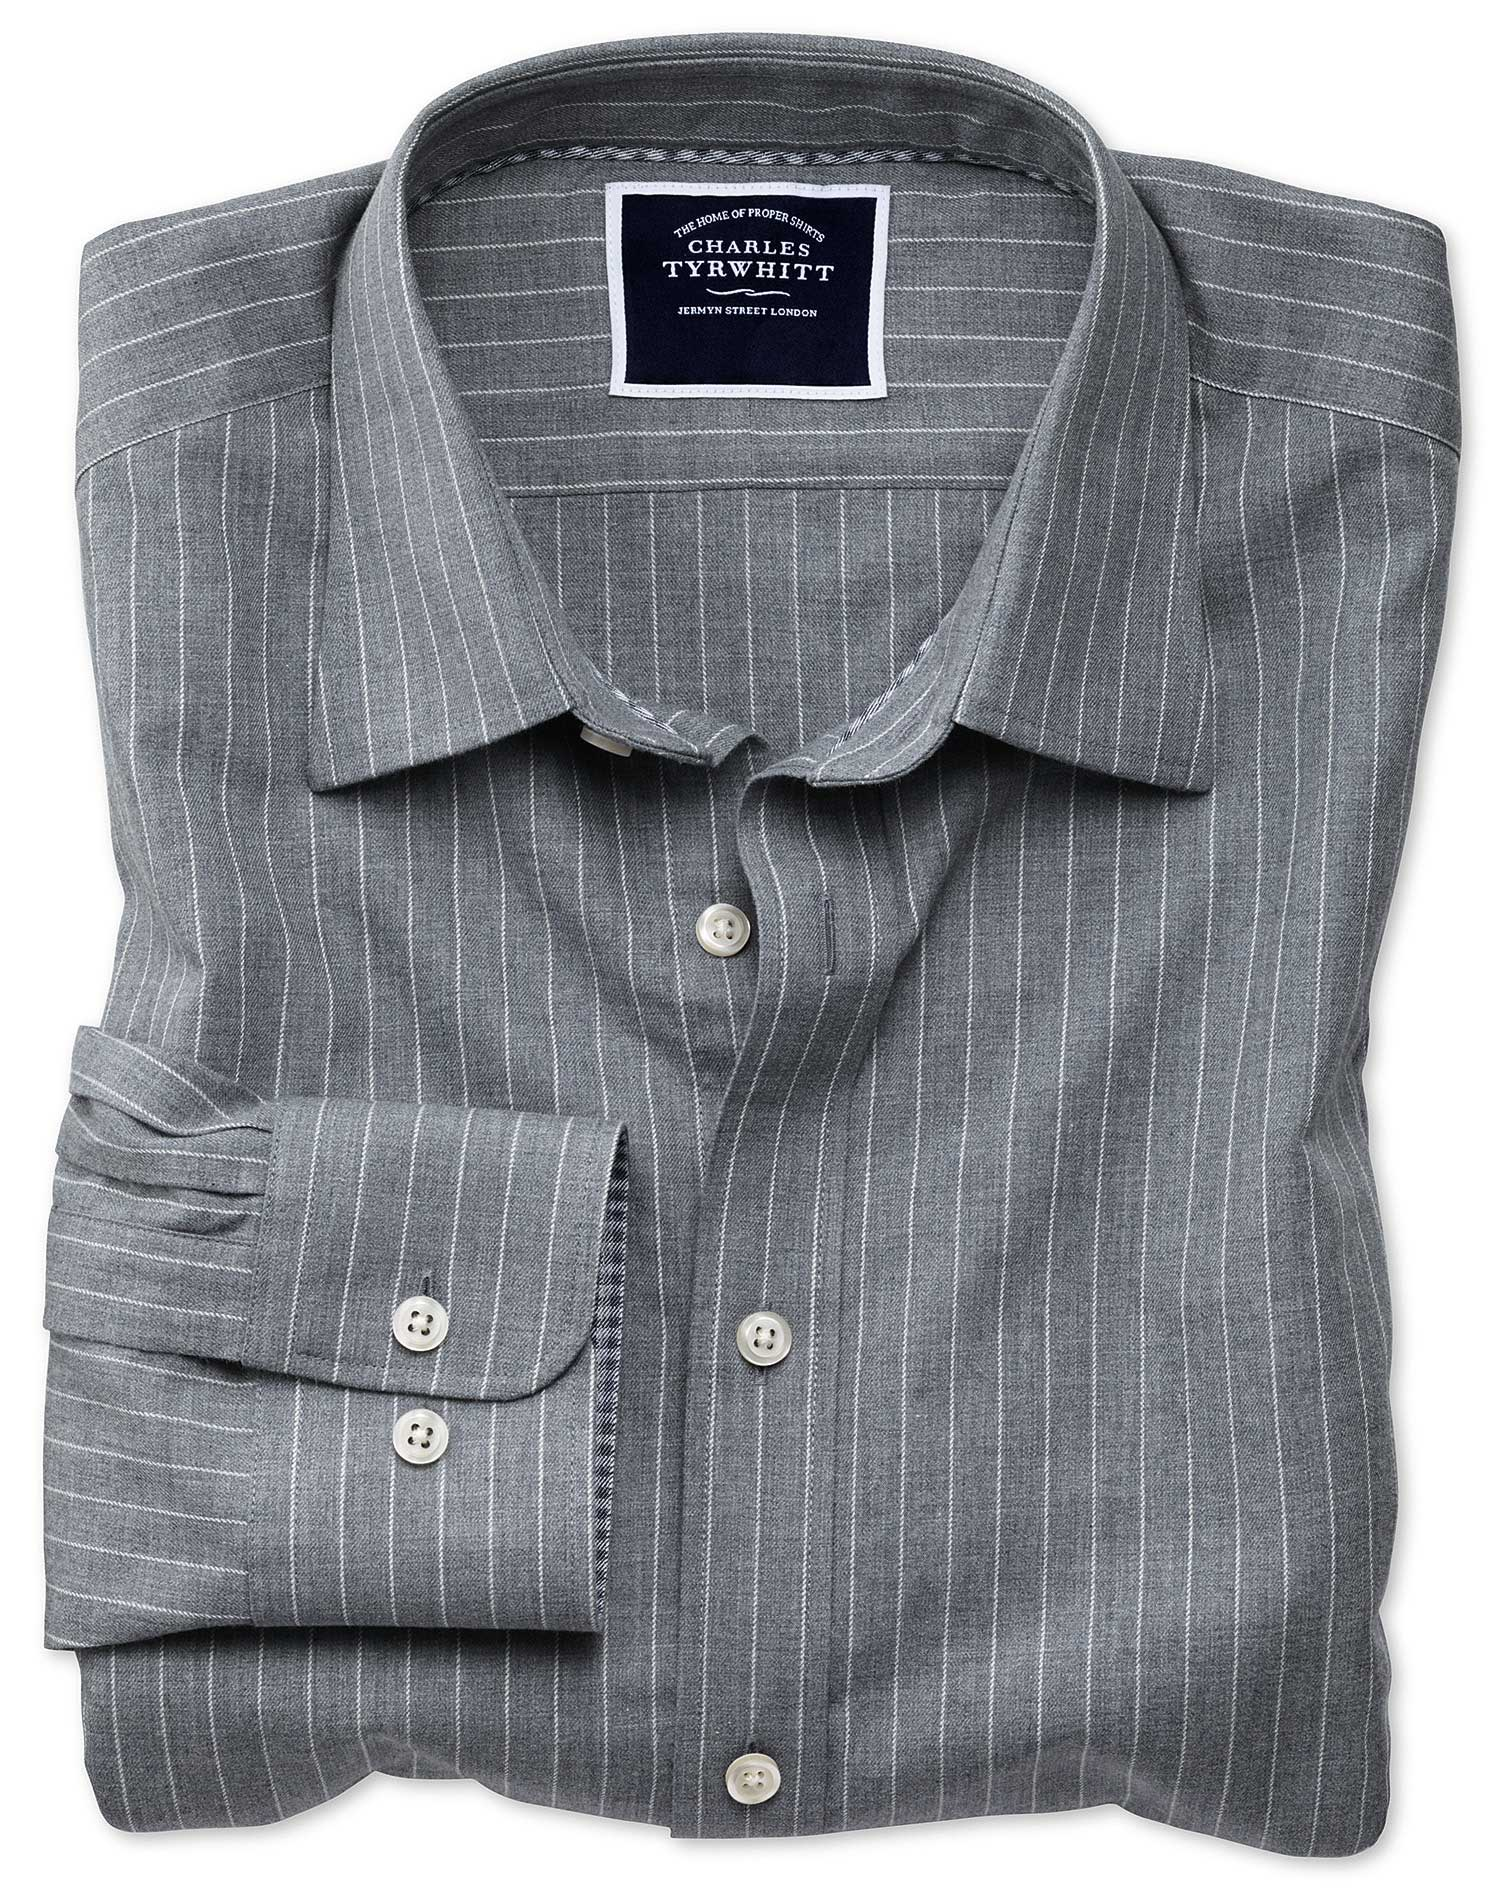 c60d001e99 ... Classic fit grey stripe soft textured shirt. Previous. Clearance